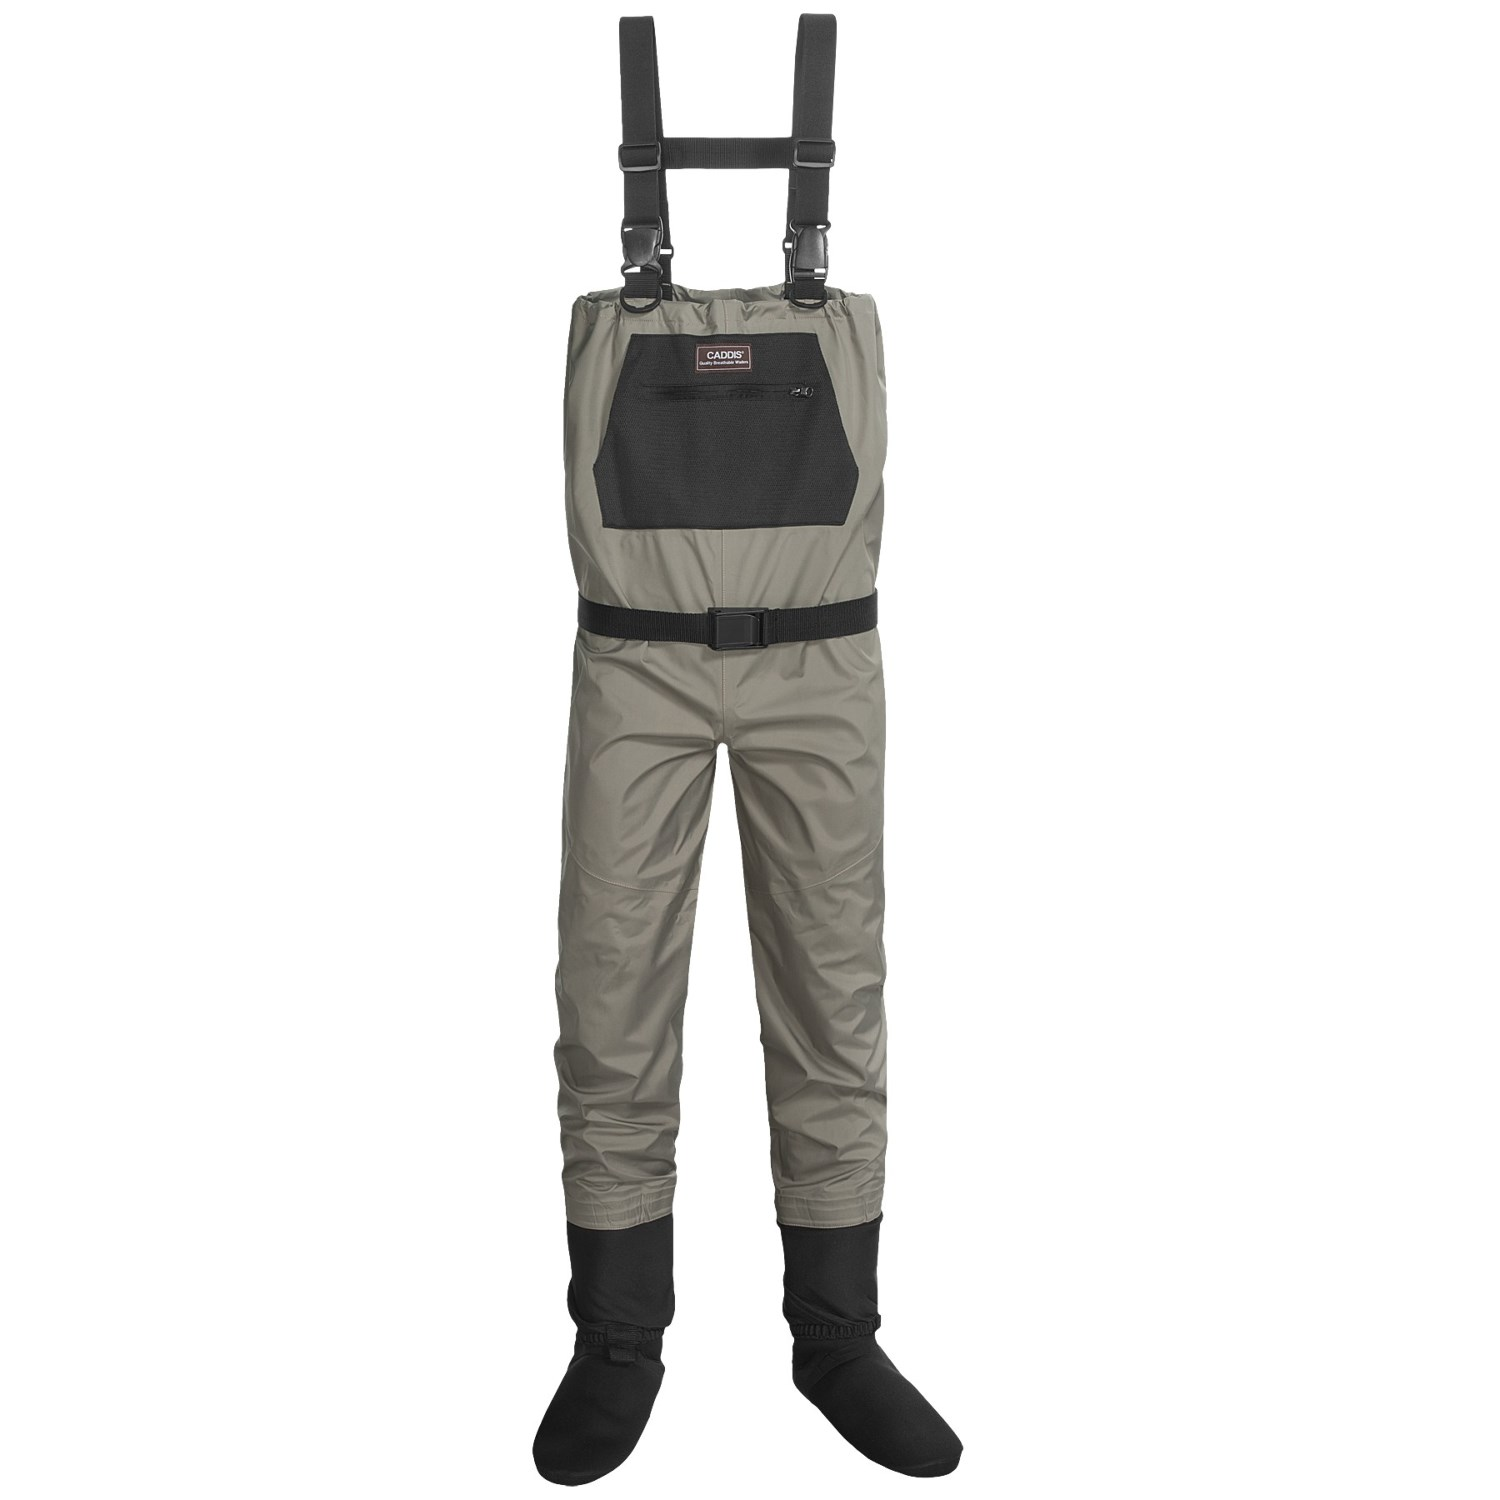 Caddis breathable chest waders for men 6414f save 28 for Chest waders for fishing